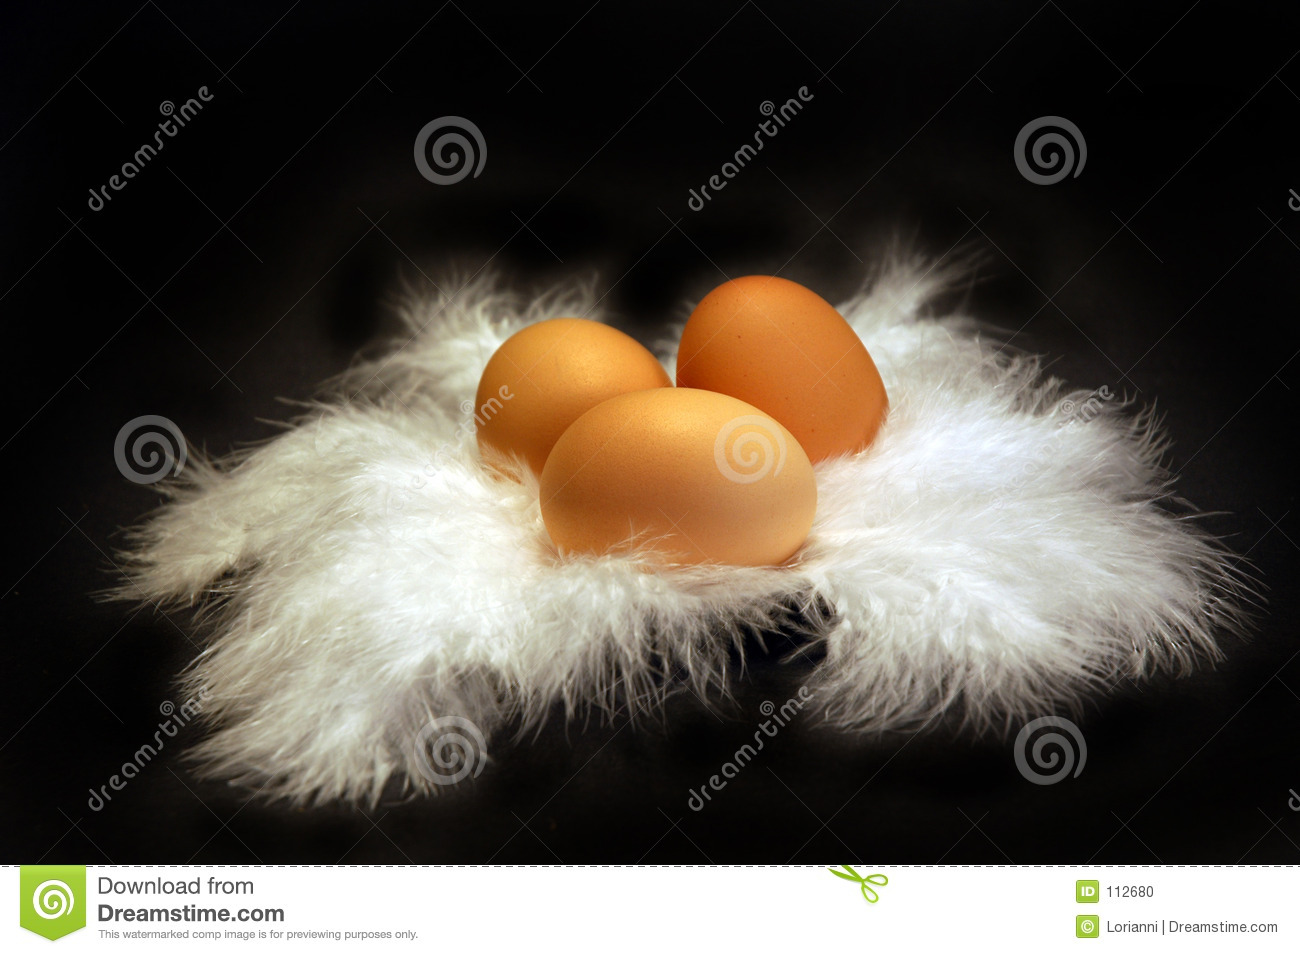 Eggs on Feather 1